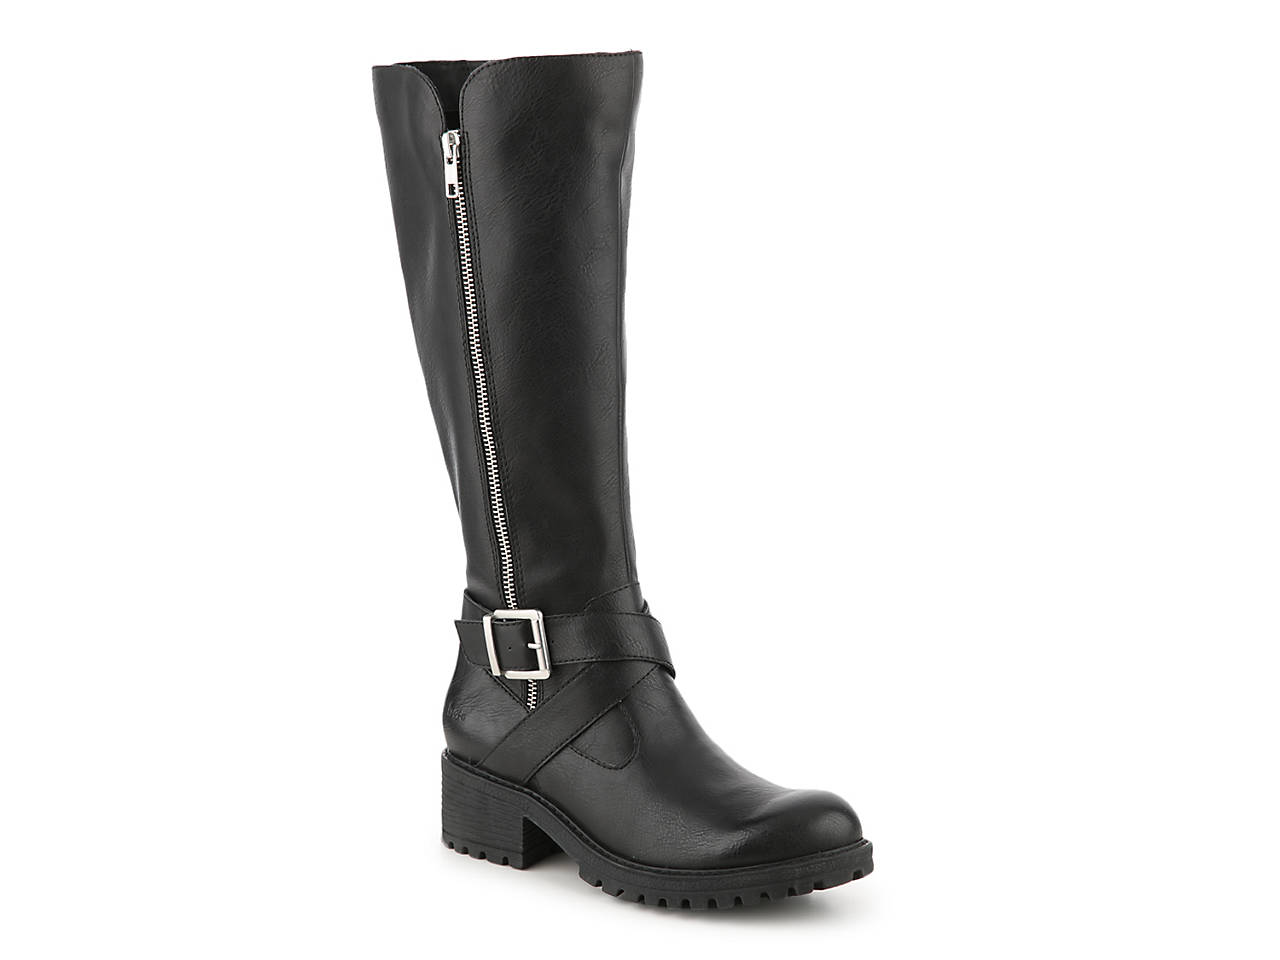 840e31955014 b.o.c Torsten Riding Boot Women s Shoes